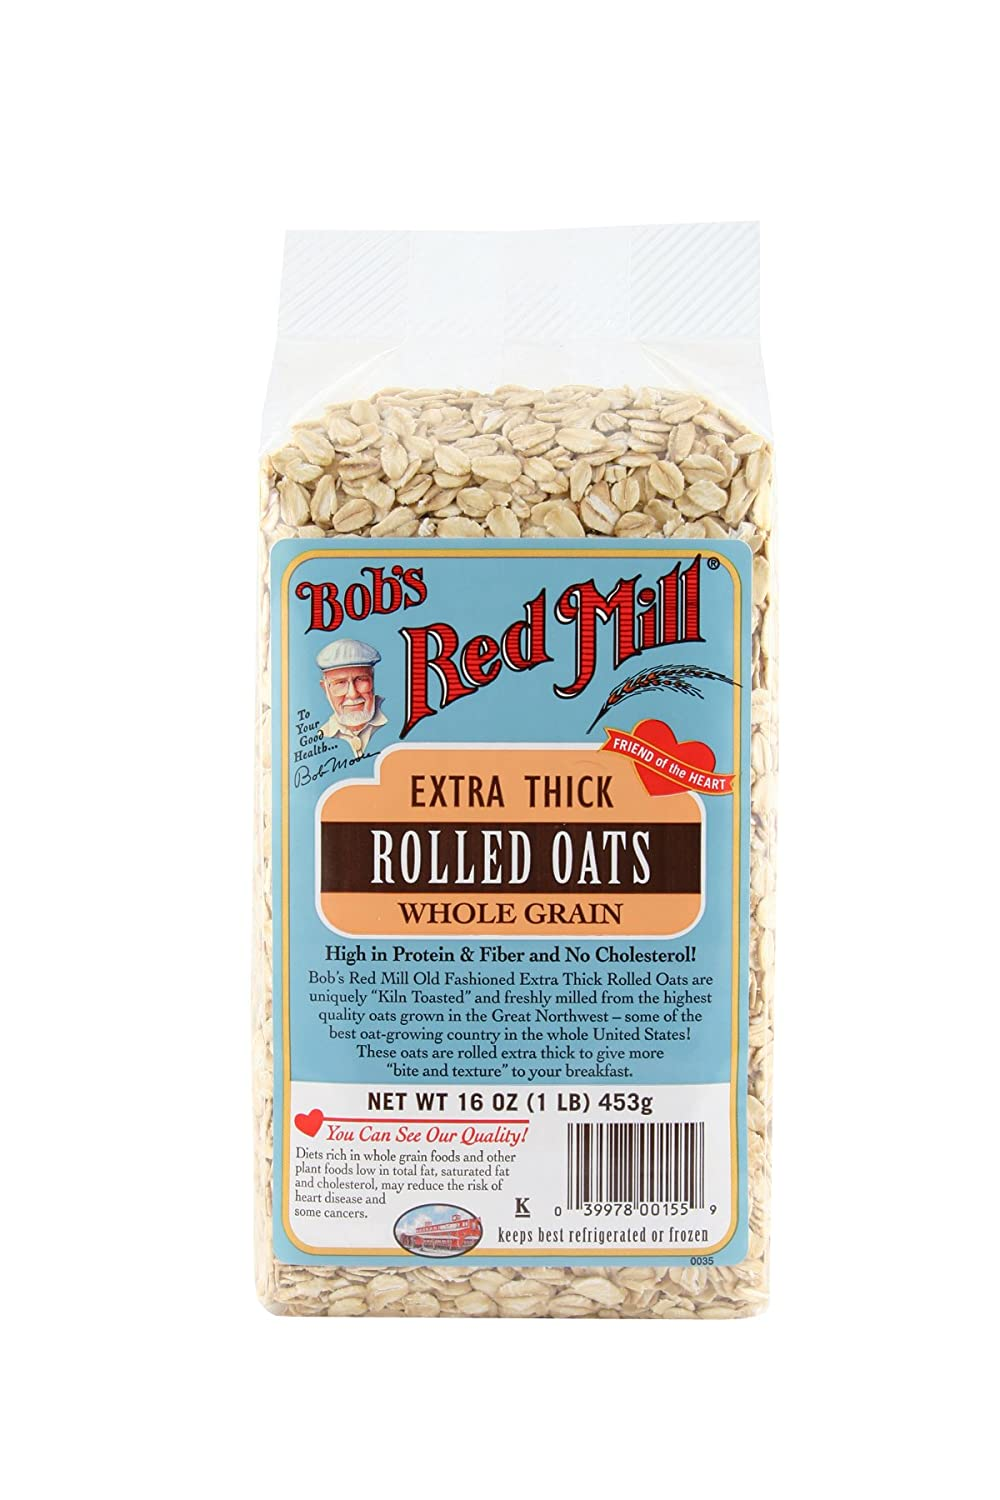 redmill-rolledoats-extra-thick.jpg